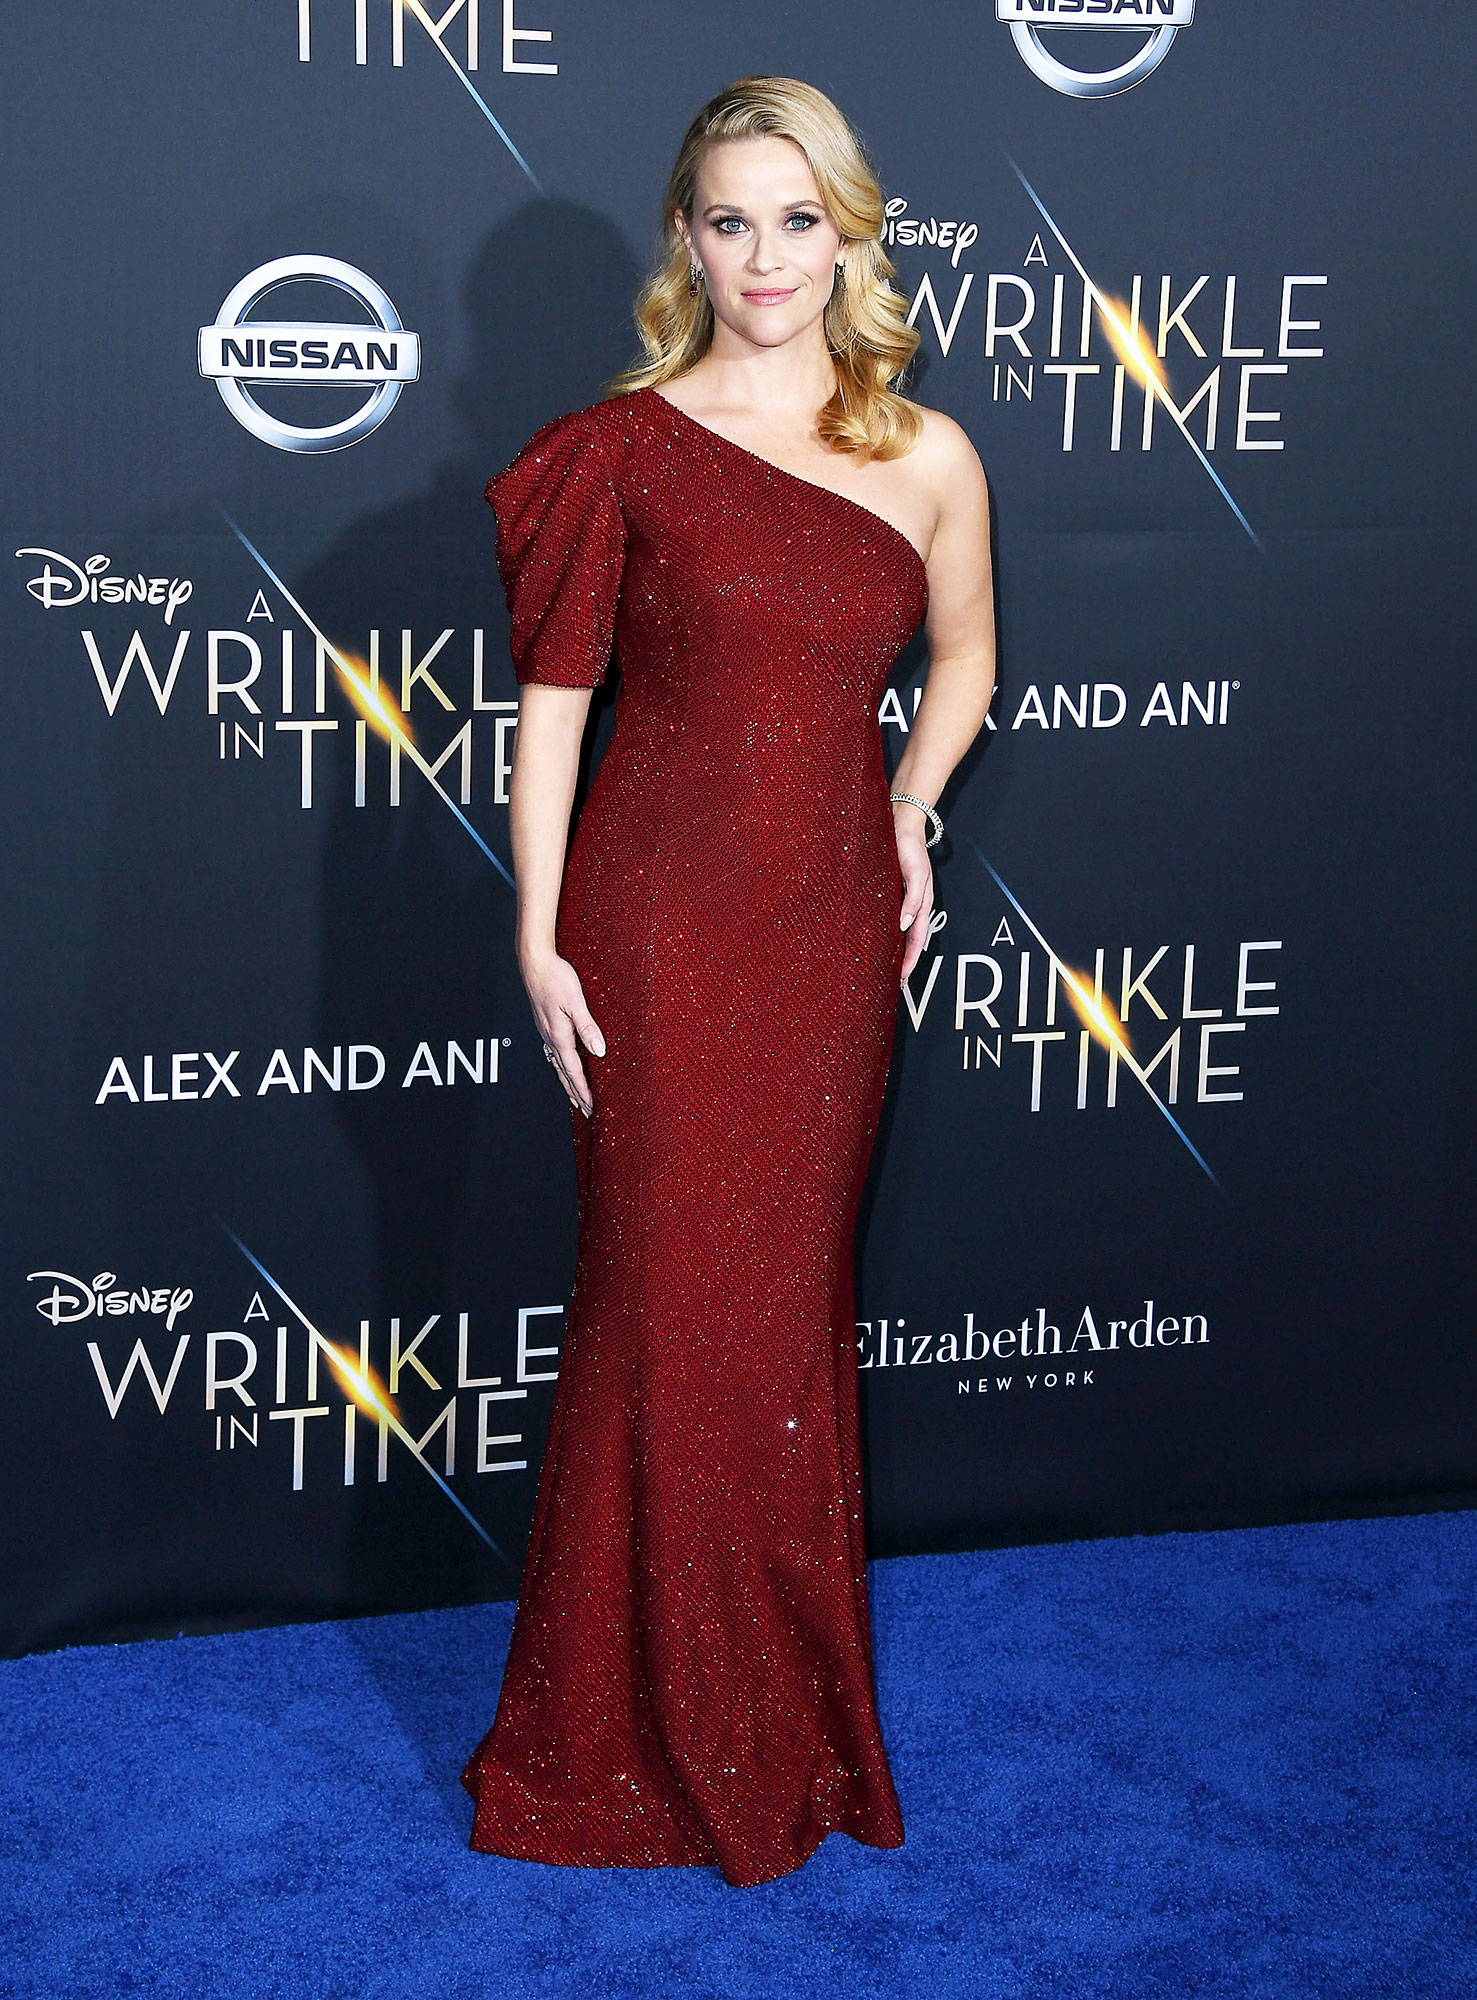 Birthday Girl Reese Witherspoon's Best Red Carpet Looks - The actress stunned at the A Wrinkle in Time premiere on February 26, 2018, wearing a deep red Michael Kors one-shouldered gown with sparkly sequins.